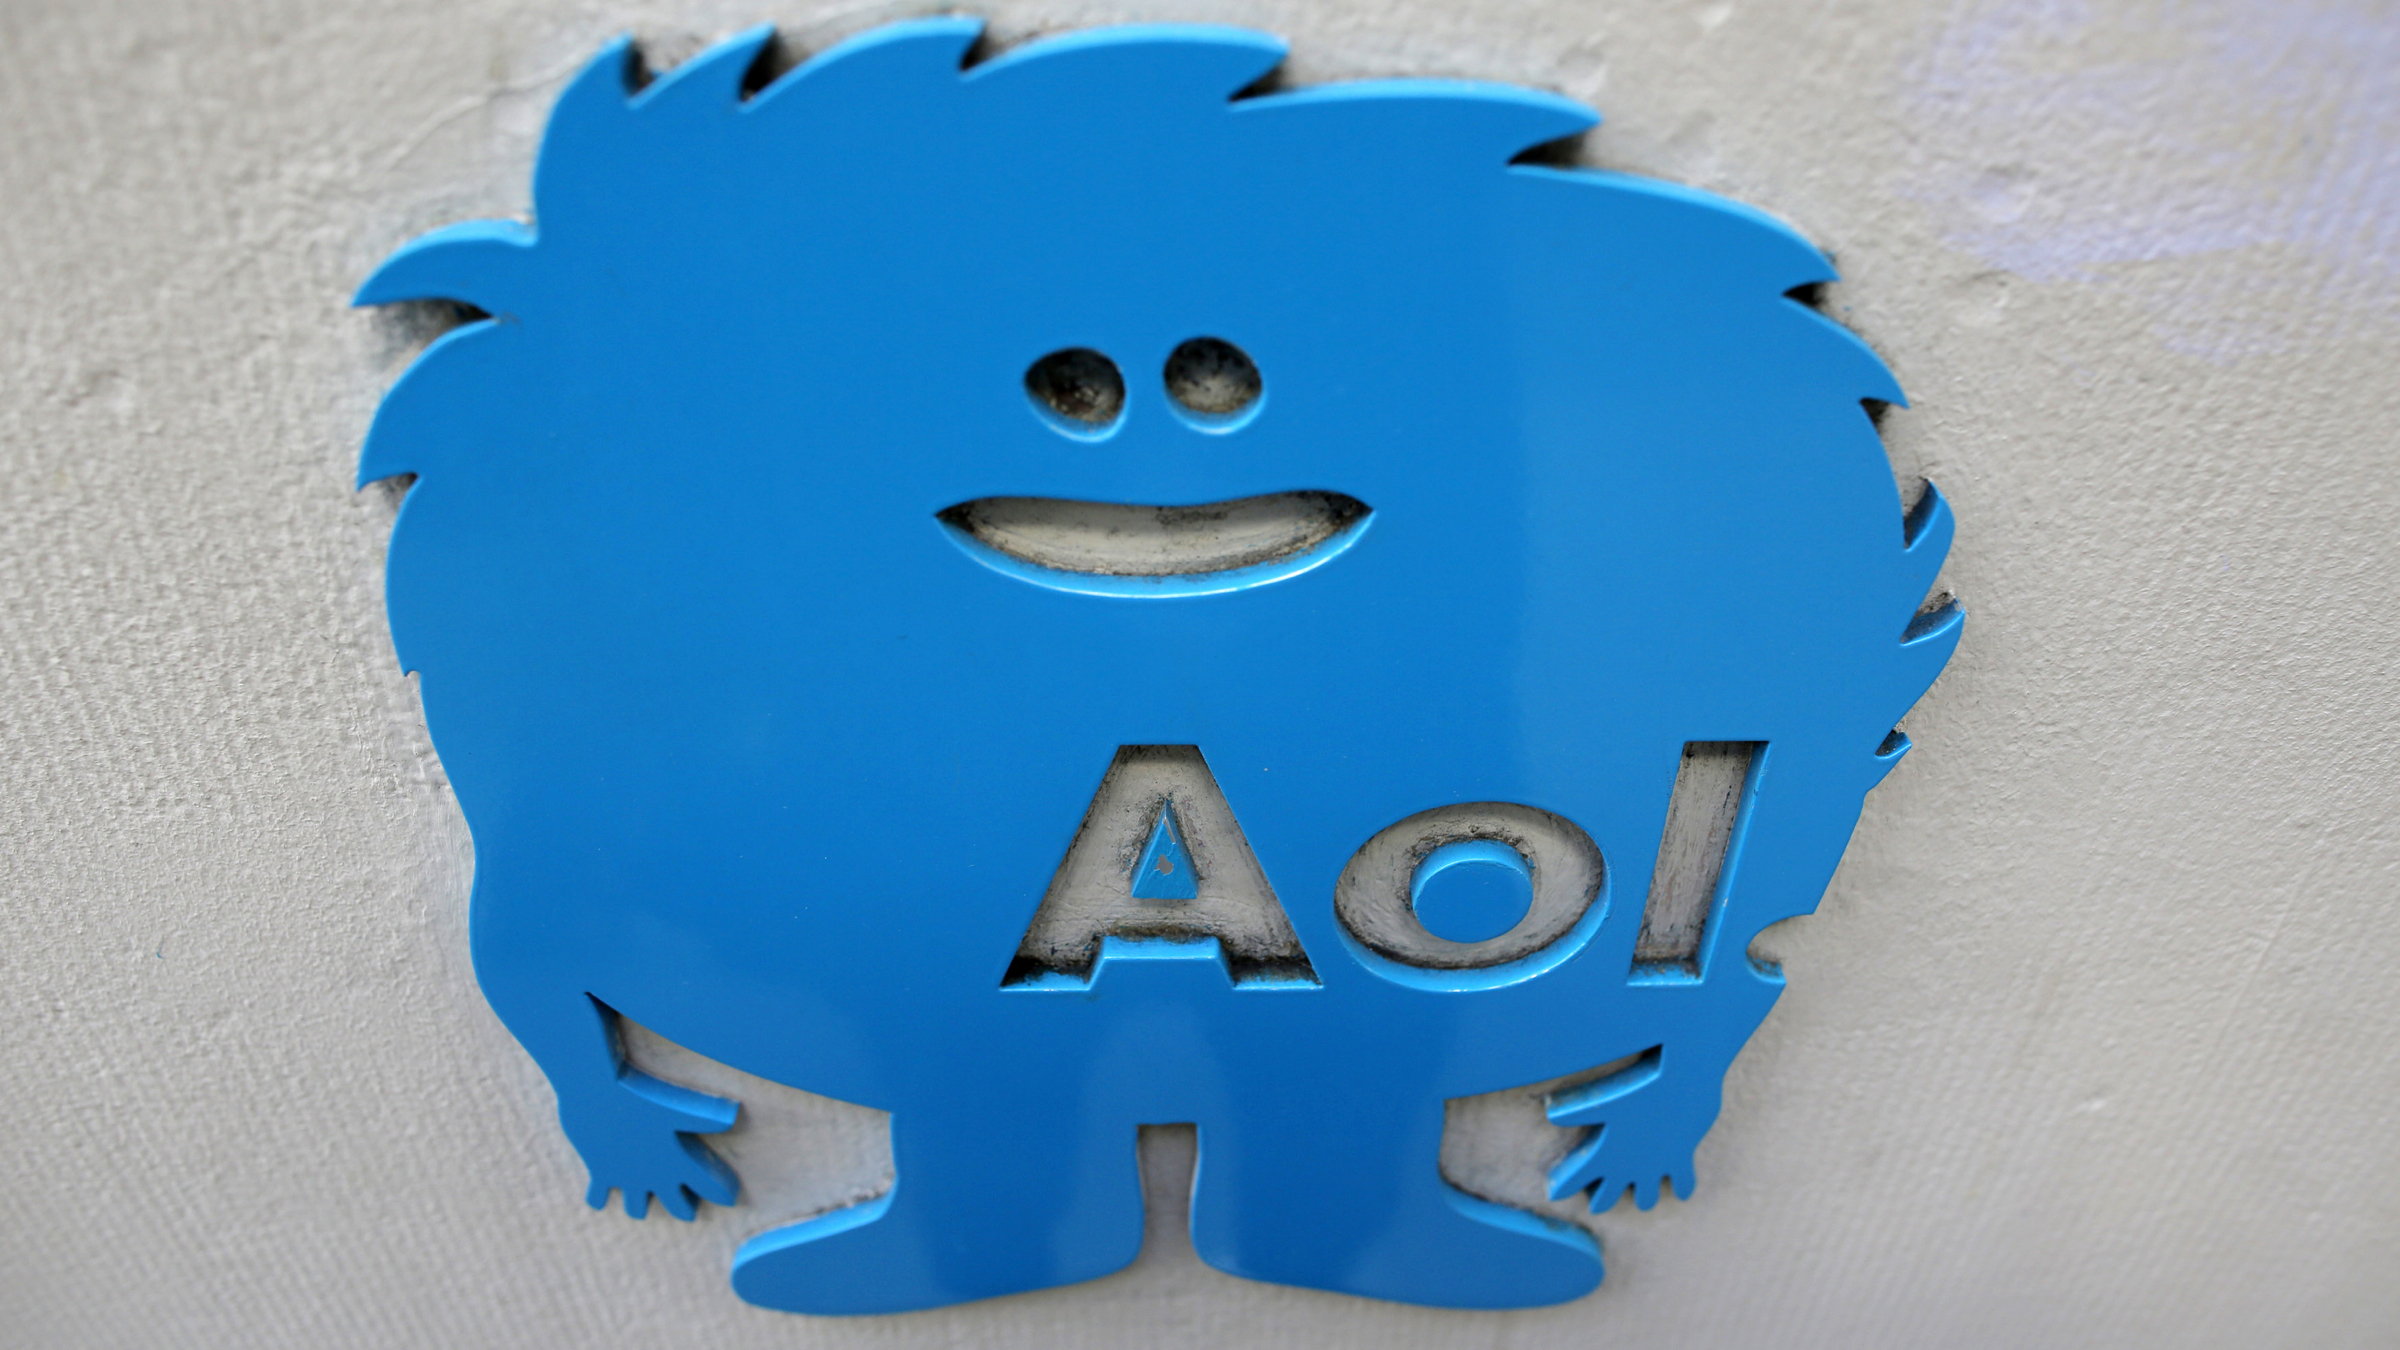 The AOL logo is seen at the company's office in New York November 5, 2013. AOL Inc reported higher-than-expected third-quarter revenue on increased advertising sales, but earnings fell sharply because of challenges at its network of community news websites known as Patch. REUTERS/Andrew Kelly (UNITED STATES - Tags: BUSINESS LOGO SCIENCE TECHNOLOGY SOCIETY) - RTX1518R